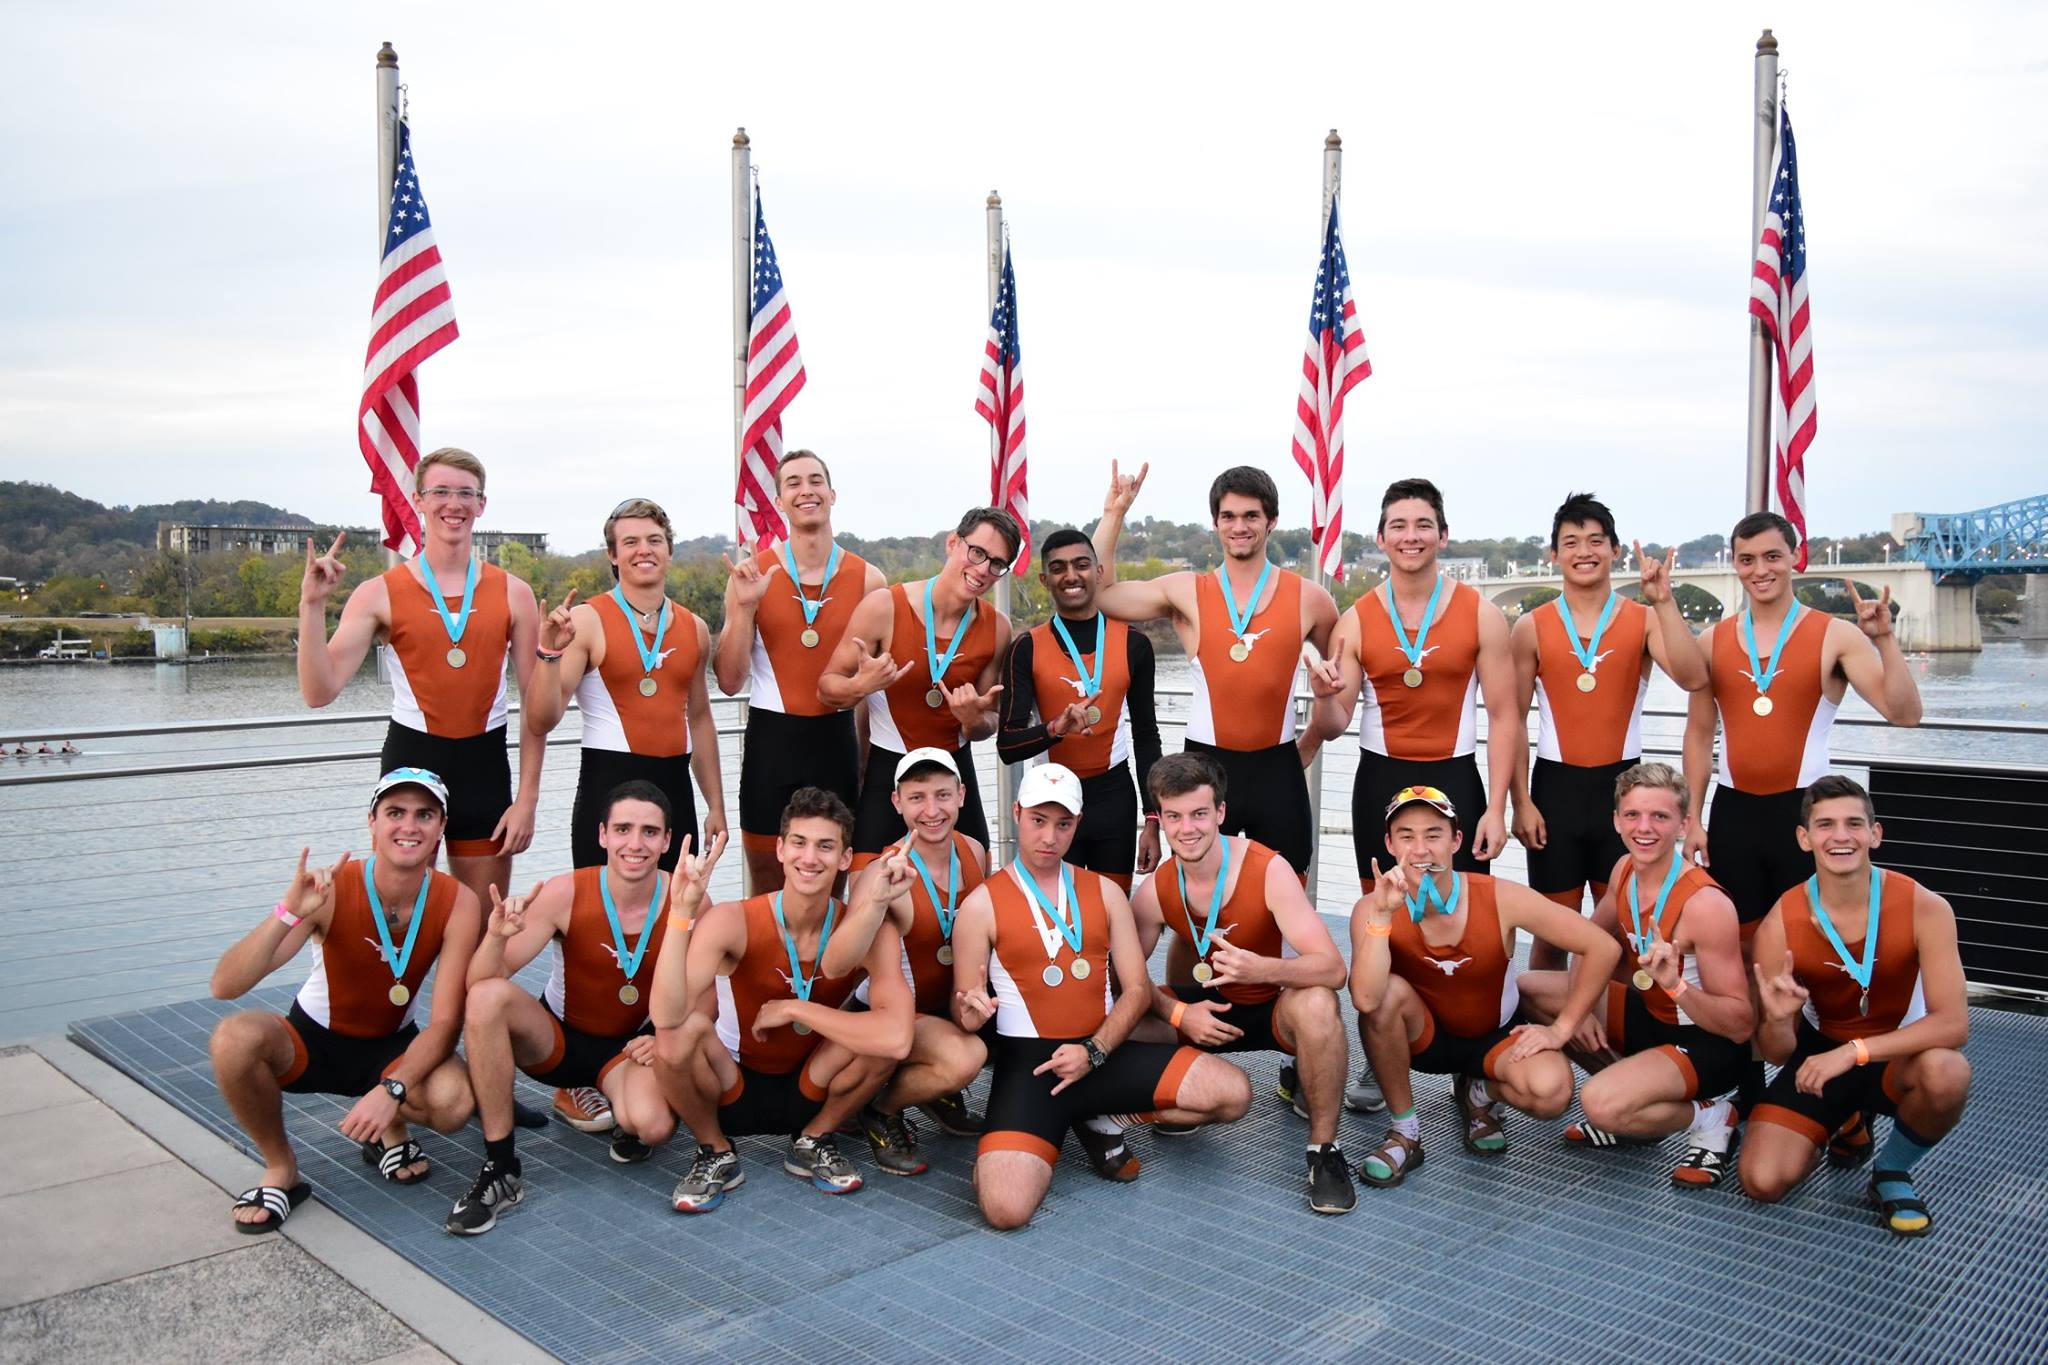 In a successful culmination to the fall pre-season, Texas Crew won the Men's Collegiate 8+ and Men's Lightweight 8+ (both pictured) at the Head of the Hooch Regatta in Chattanooga, TN.